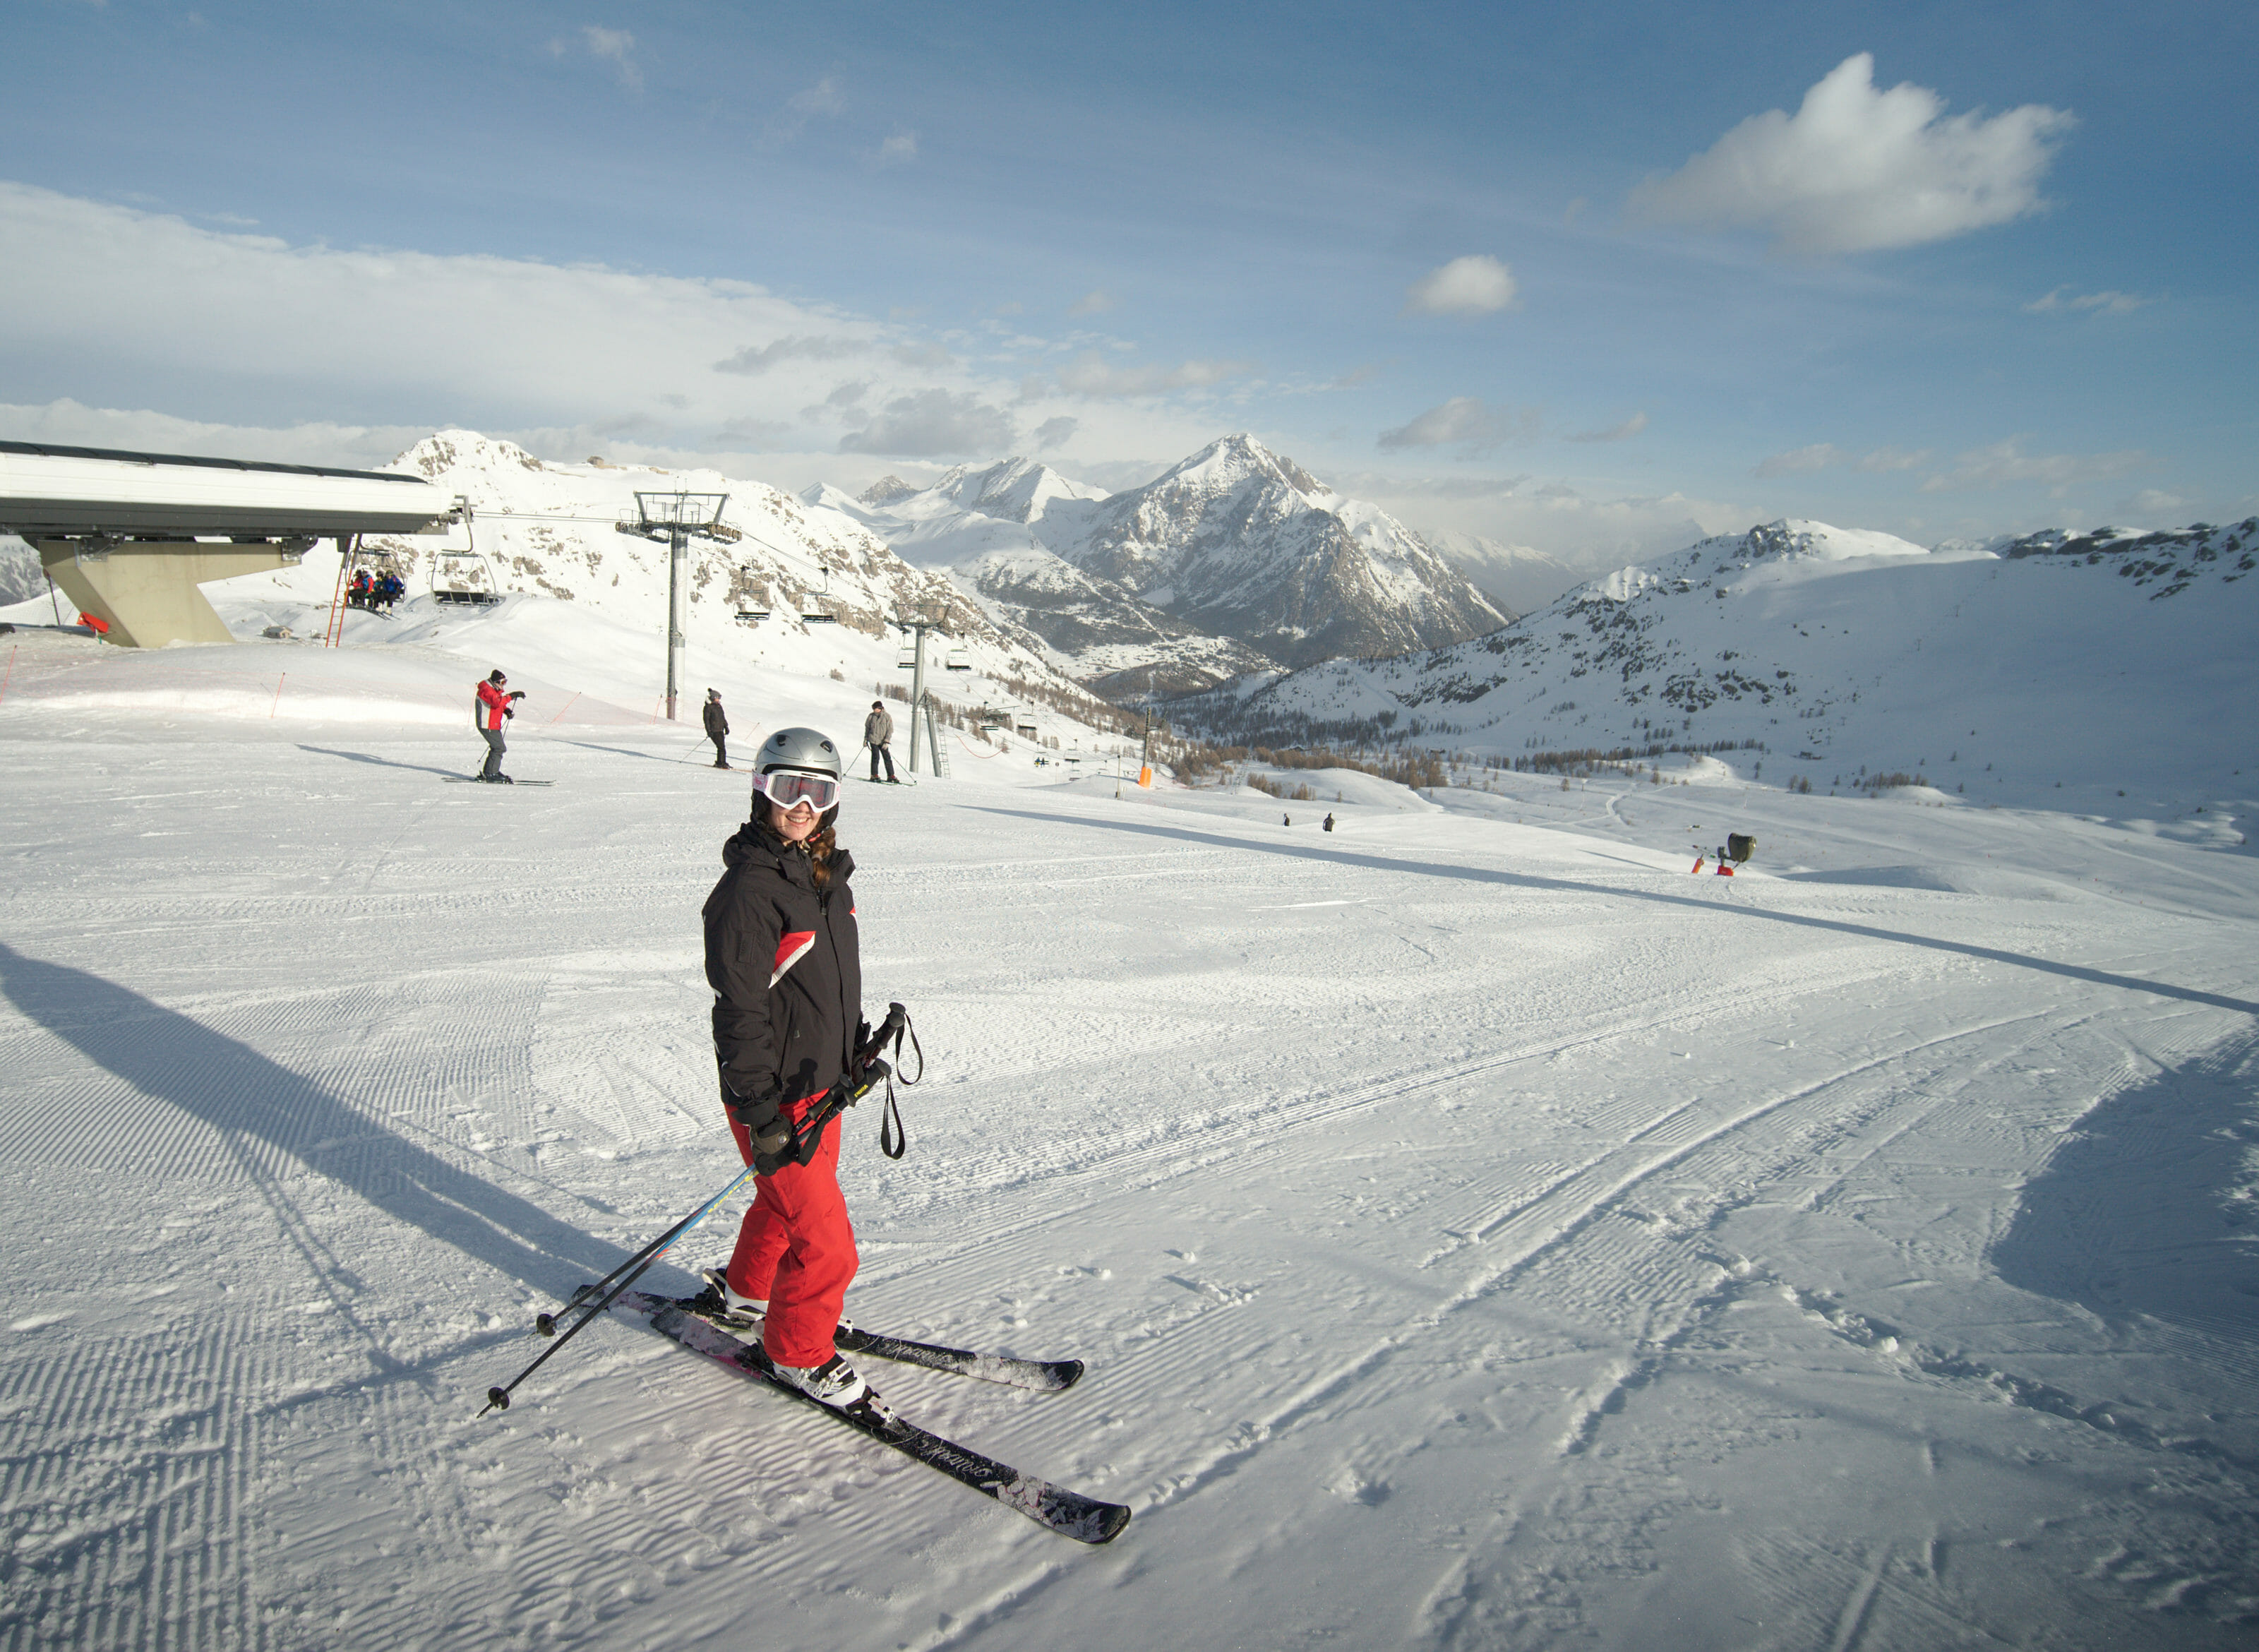 on the skis